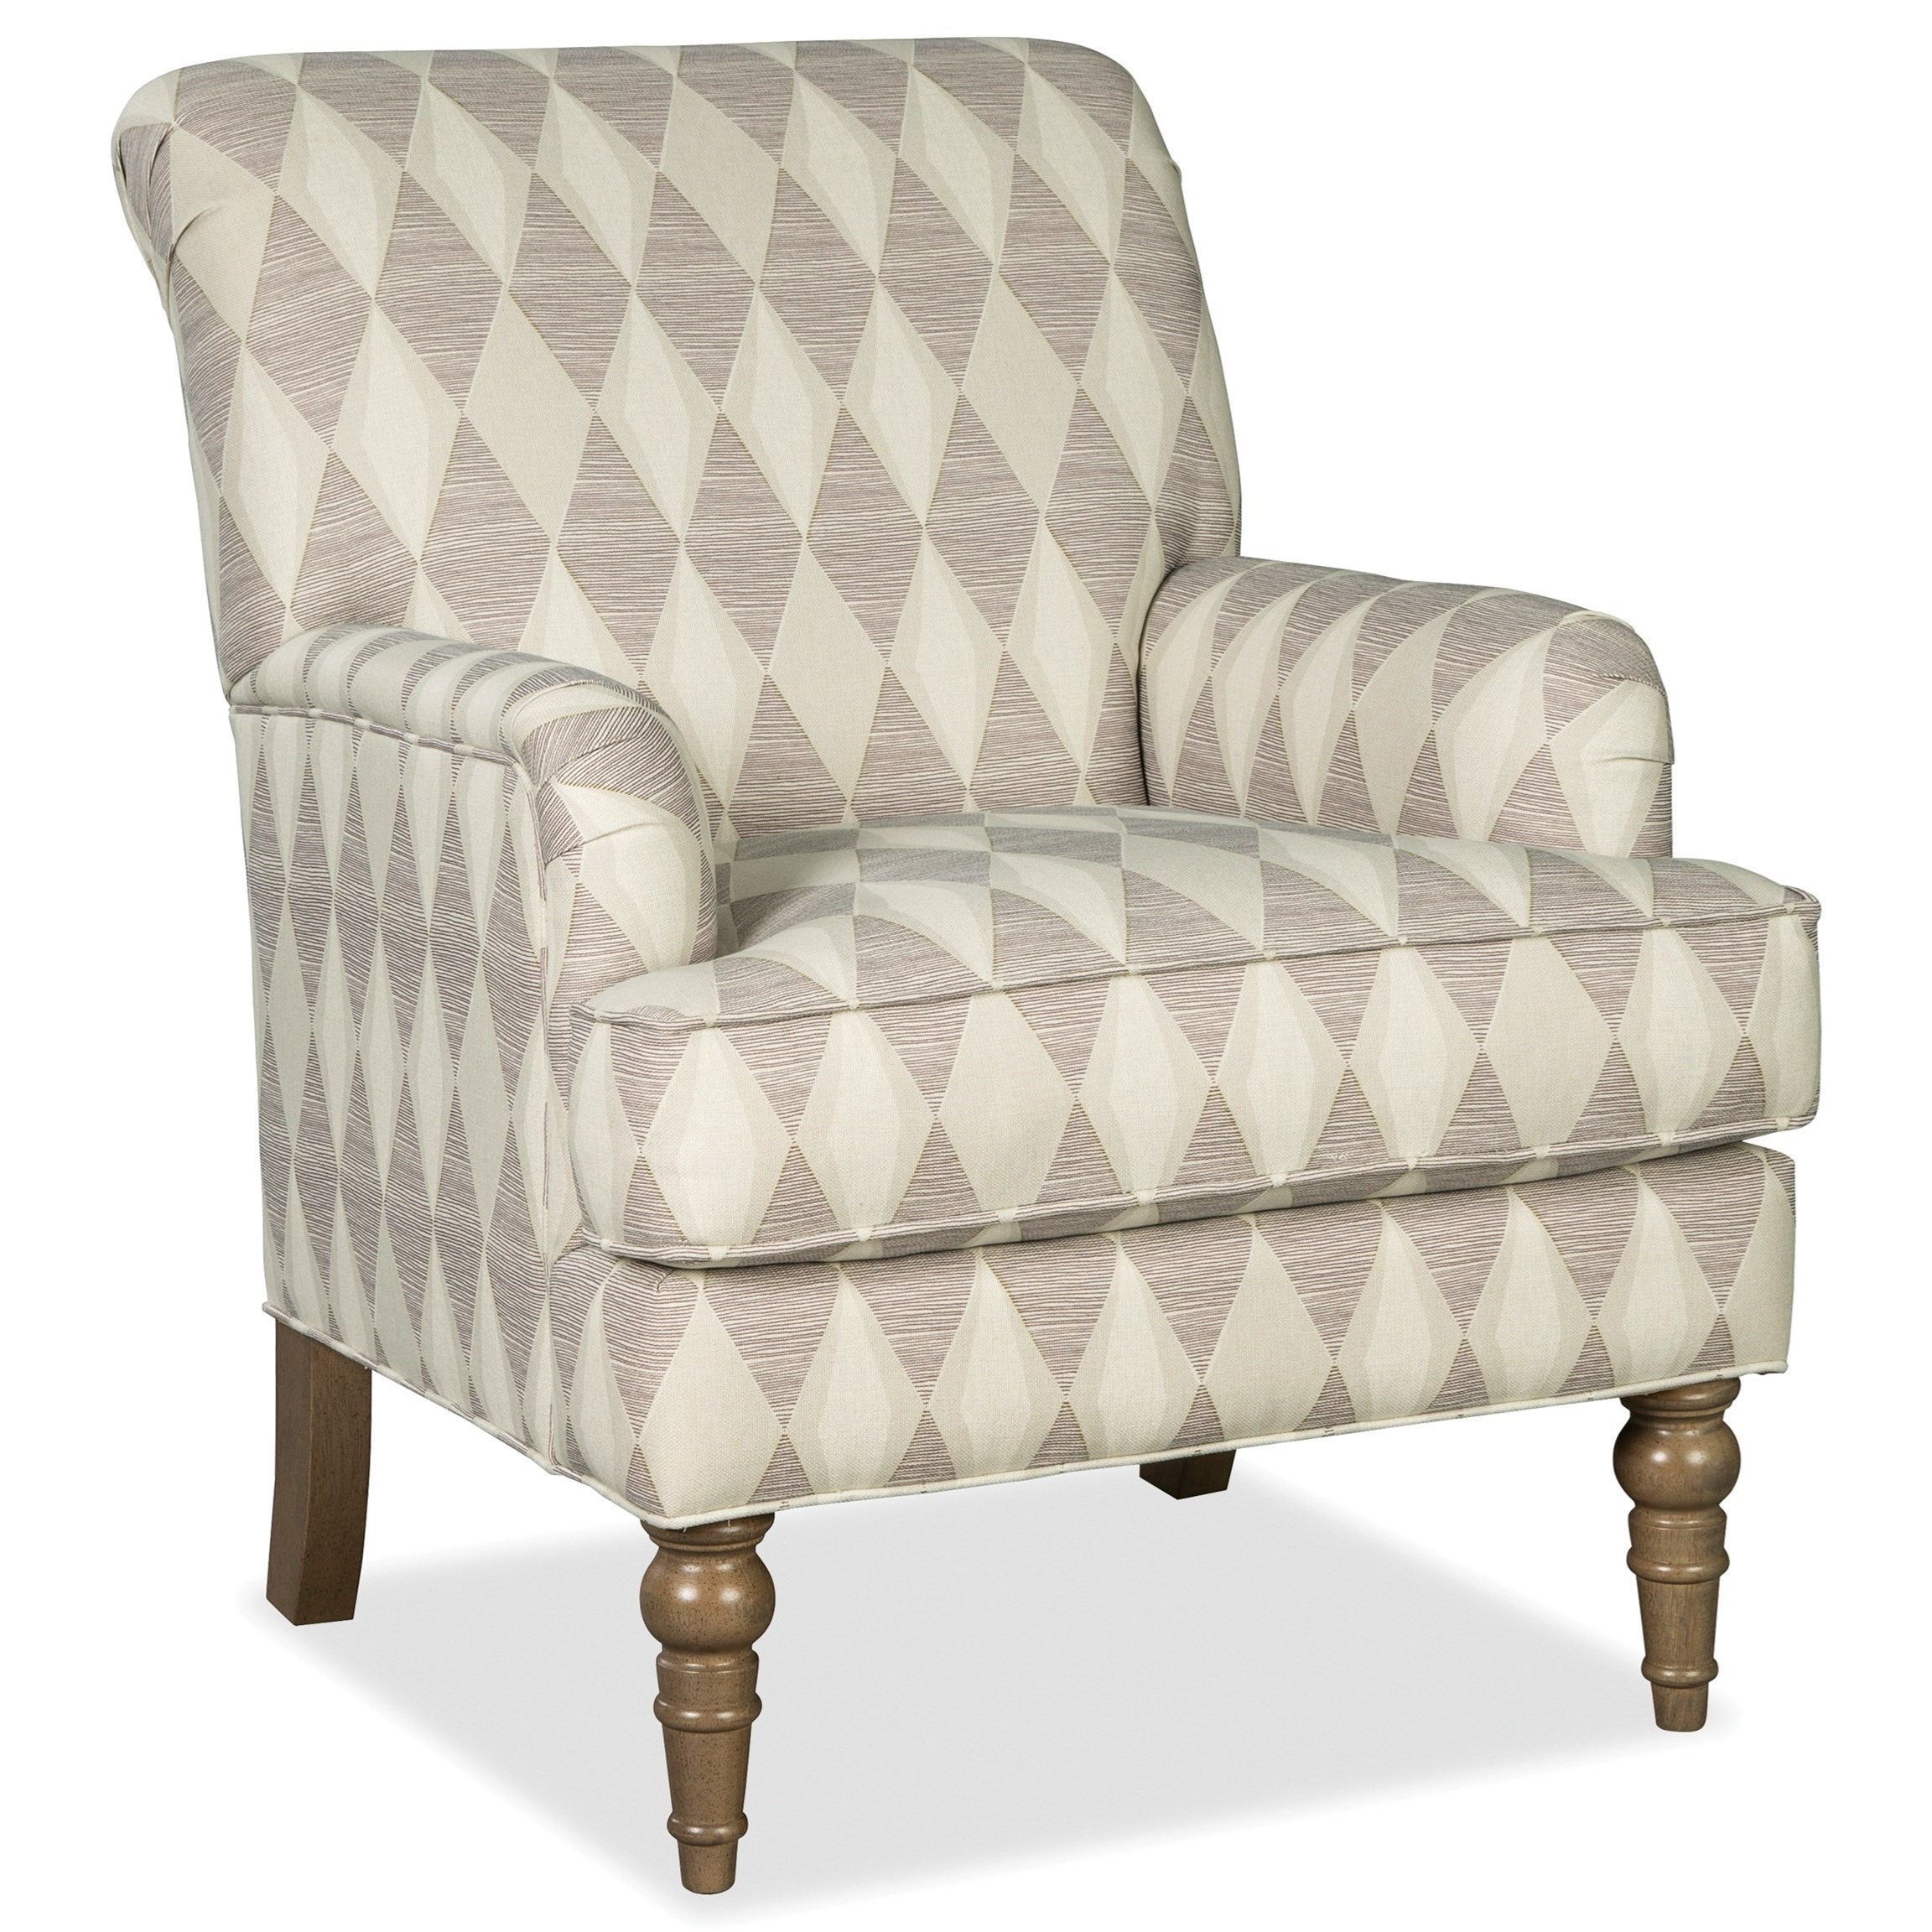 Paula Deen Upholstered Accents Chair by Paula Deen by Craftmaster at Jacksonville Furniture Mart